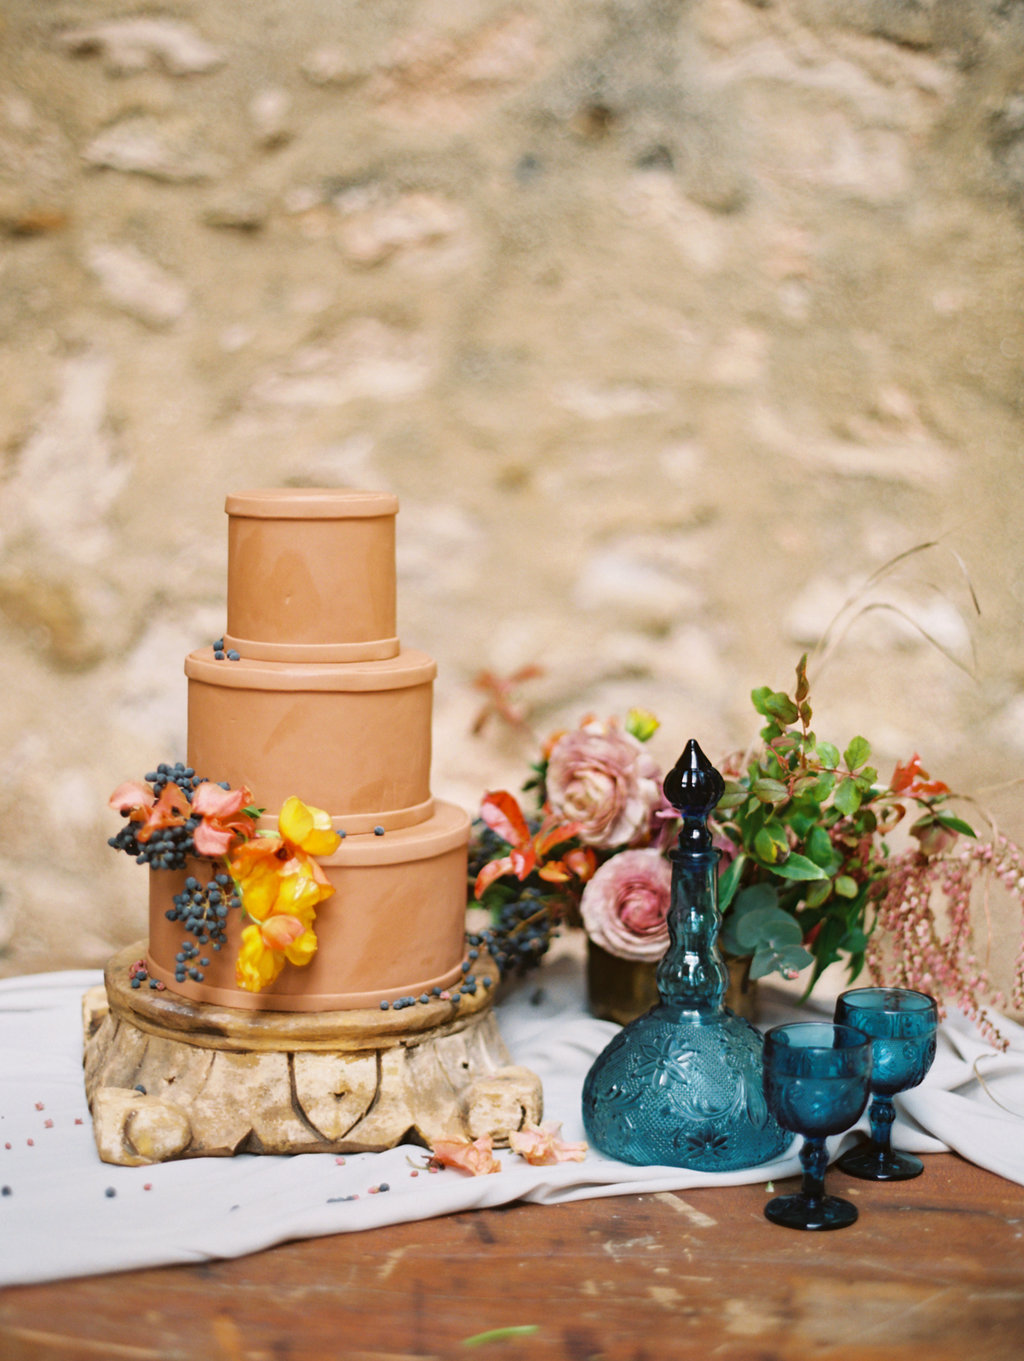 chocolate wedding cakes - photo by Charla Storey http://ruffledblog.com/architectural-san-antonio-mission-wedding-inspiration